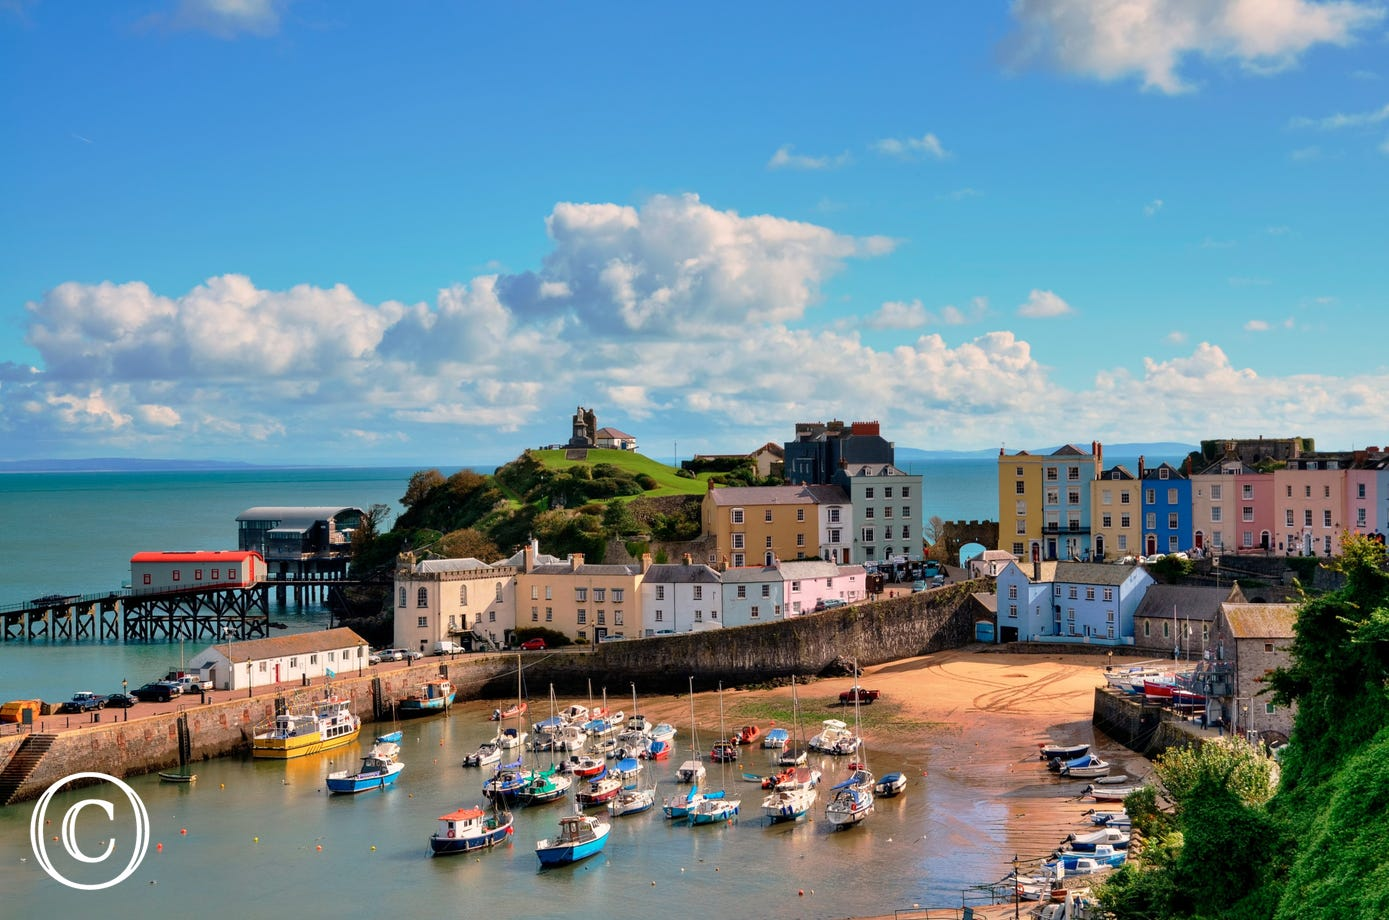 Tenby town attracts lots of visitors throughout the year due to its beauty